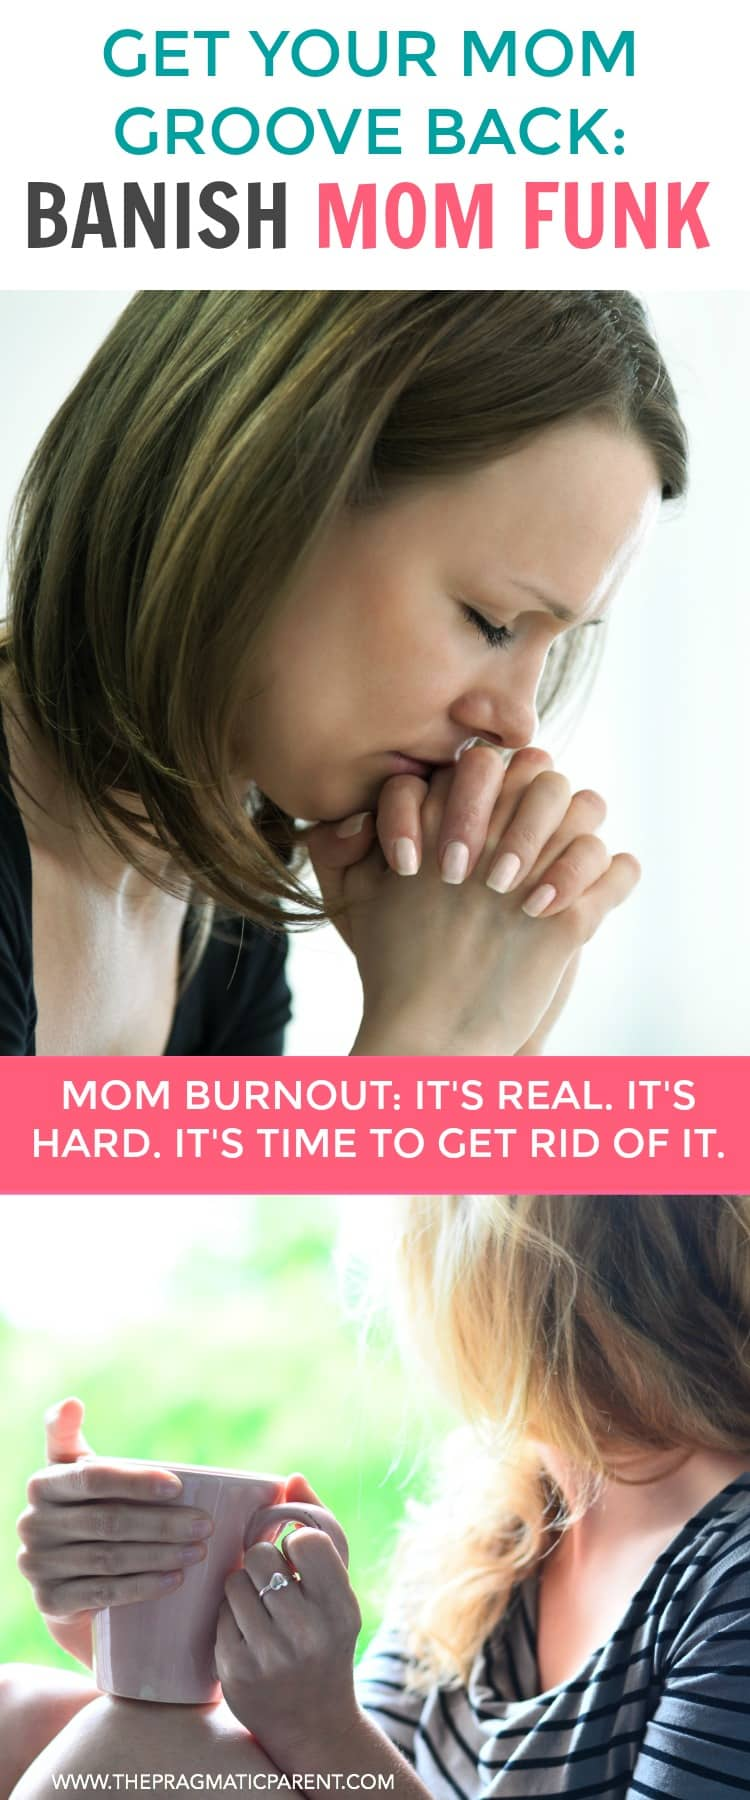 If youdon'tenjoy motherhood as much as you once did, are irritable, less patient, yell or not engaged, it could be Mom Burnout. How to kick a Mom funk. #momburnout #momfunk #unhappymom #joyinmotherhood #beahappymom